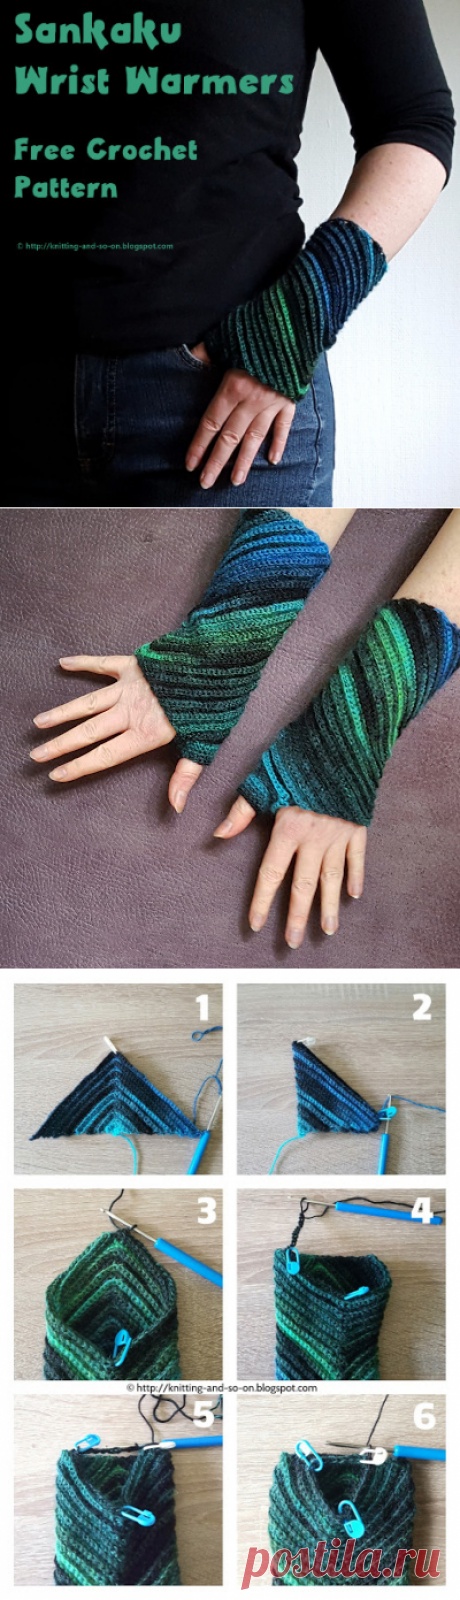 Knitting and so on: Sankaku wrist gaiters in knitting by a hook